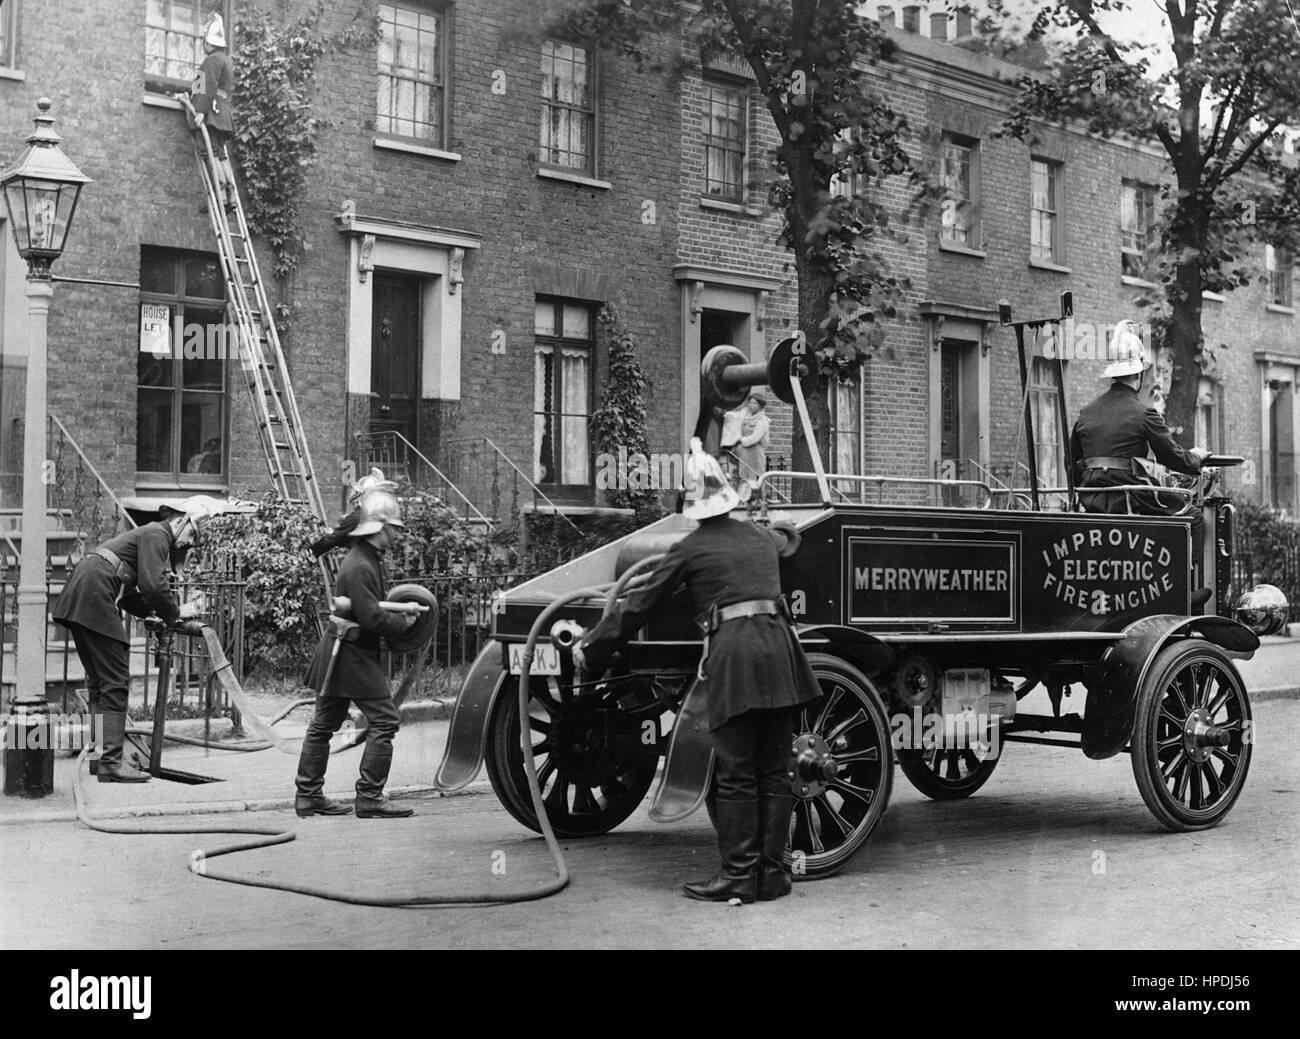 1900 Merryweather electric fire engine - Stock Image